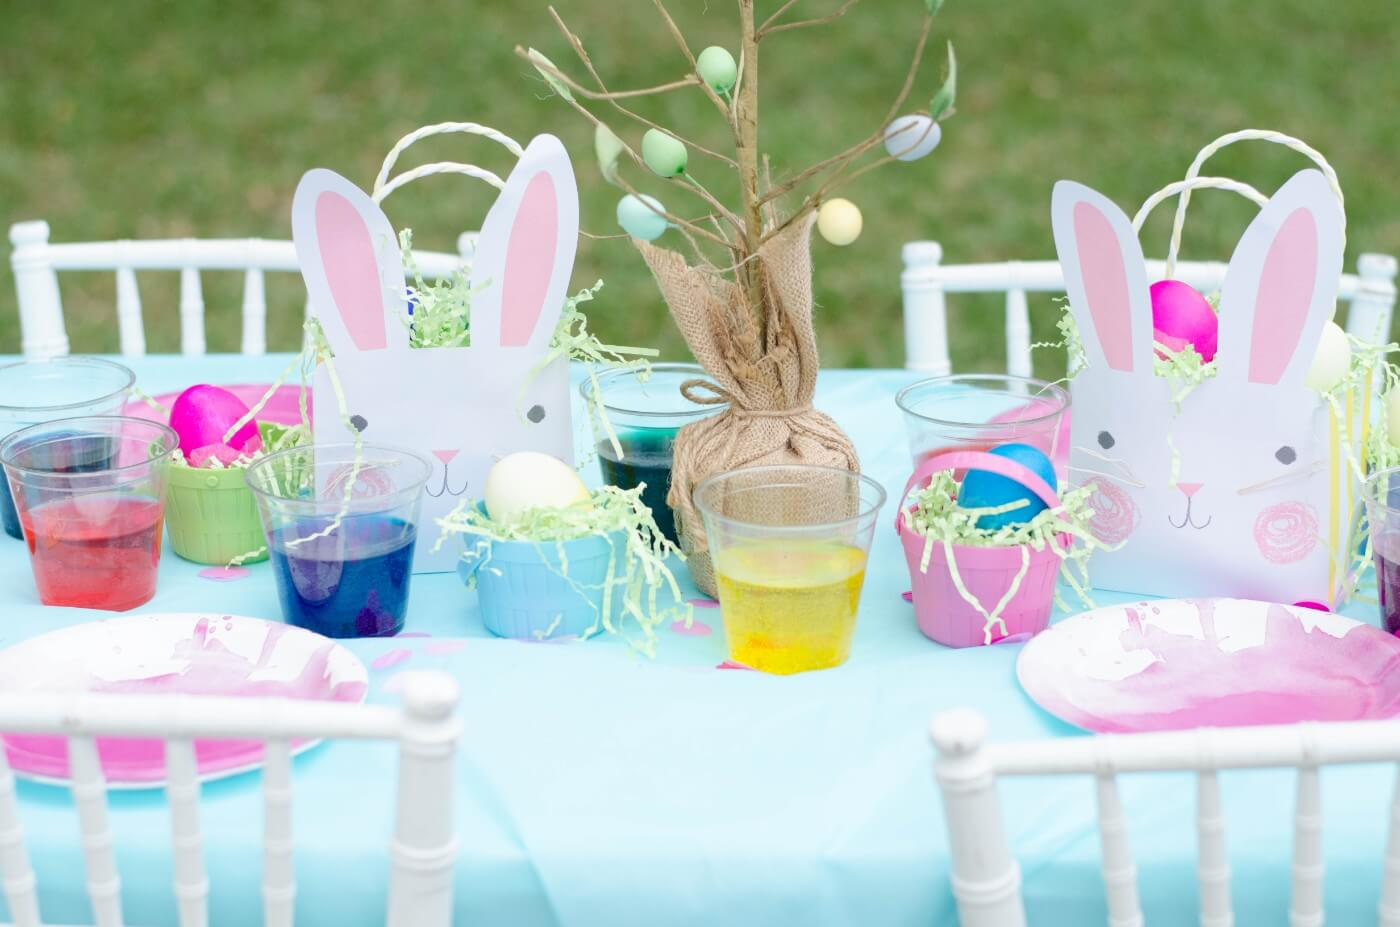 Easter Egg Dying Tips For Young Children